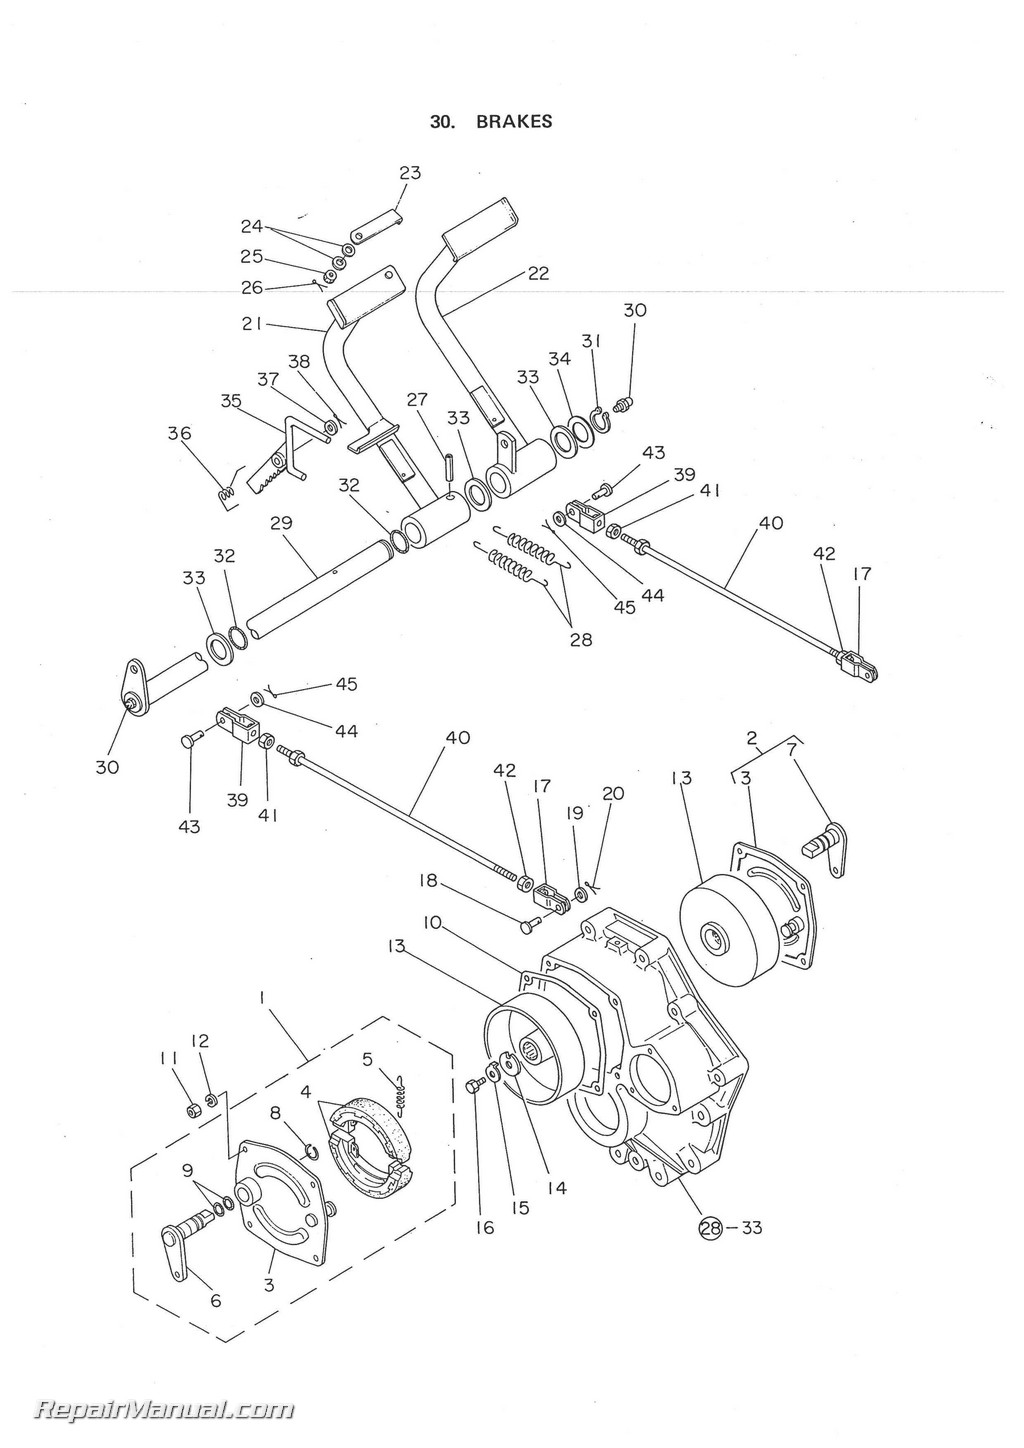 Yanmar Ym135 Ym135dsel Tractor Parts Manual